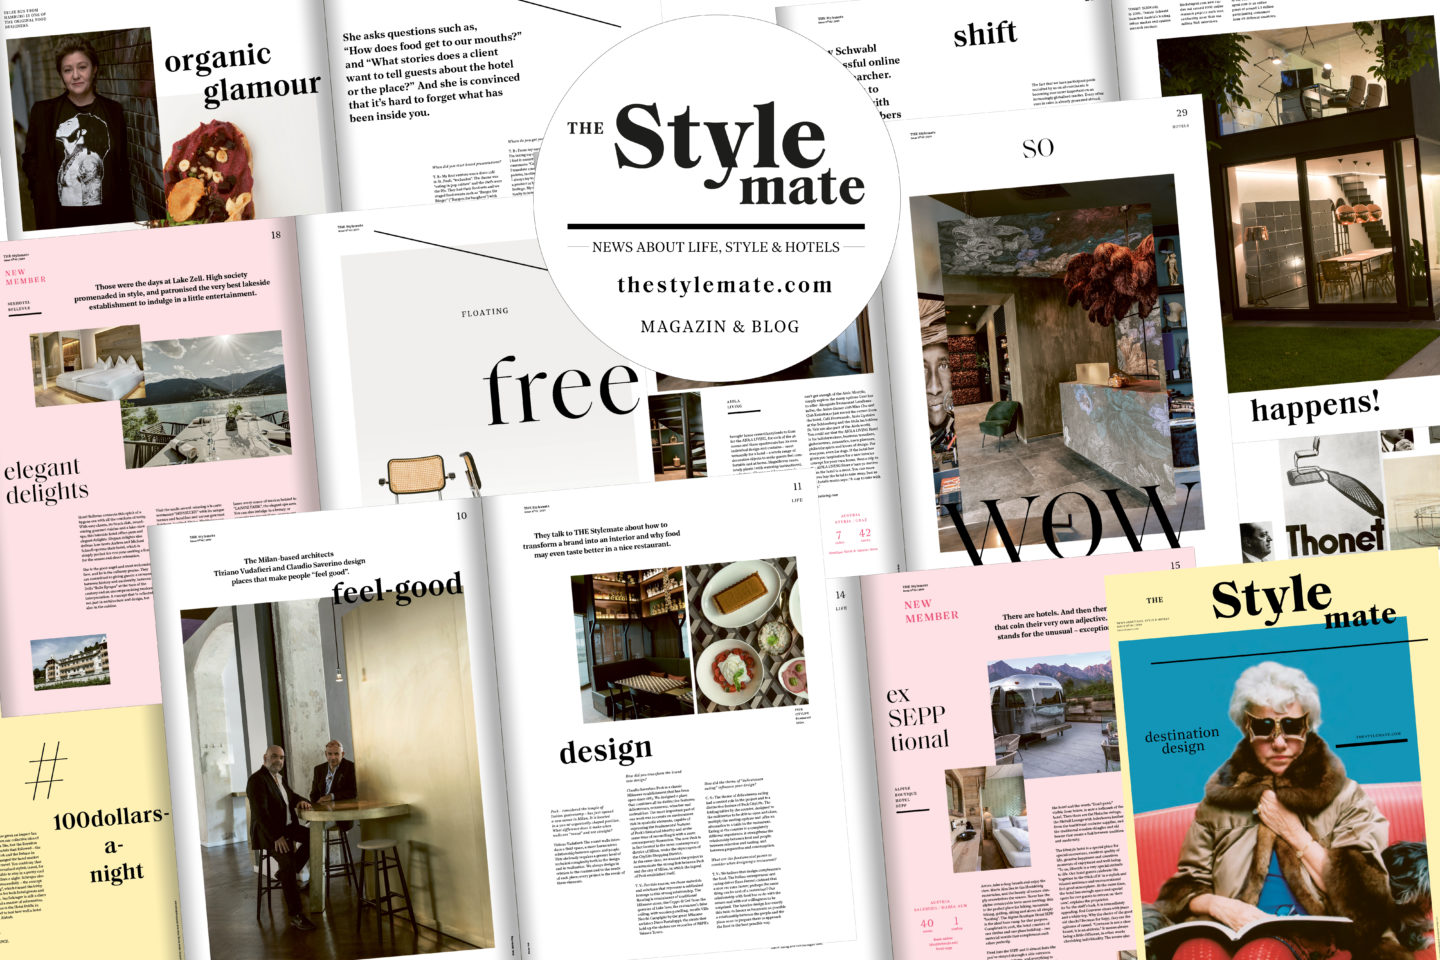 THE Stylemate MAGAZIN & BLOG